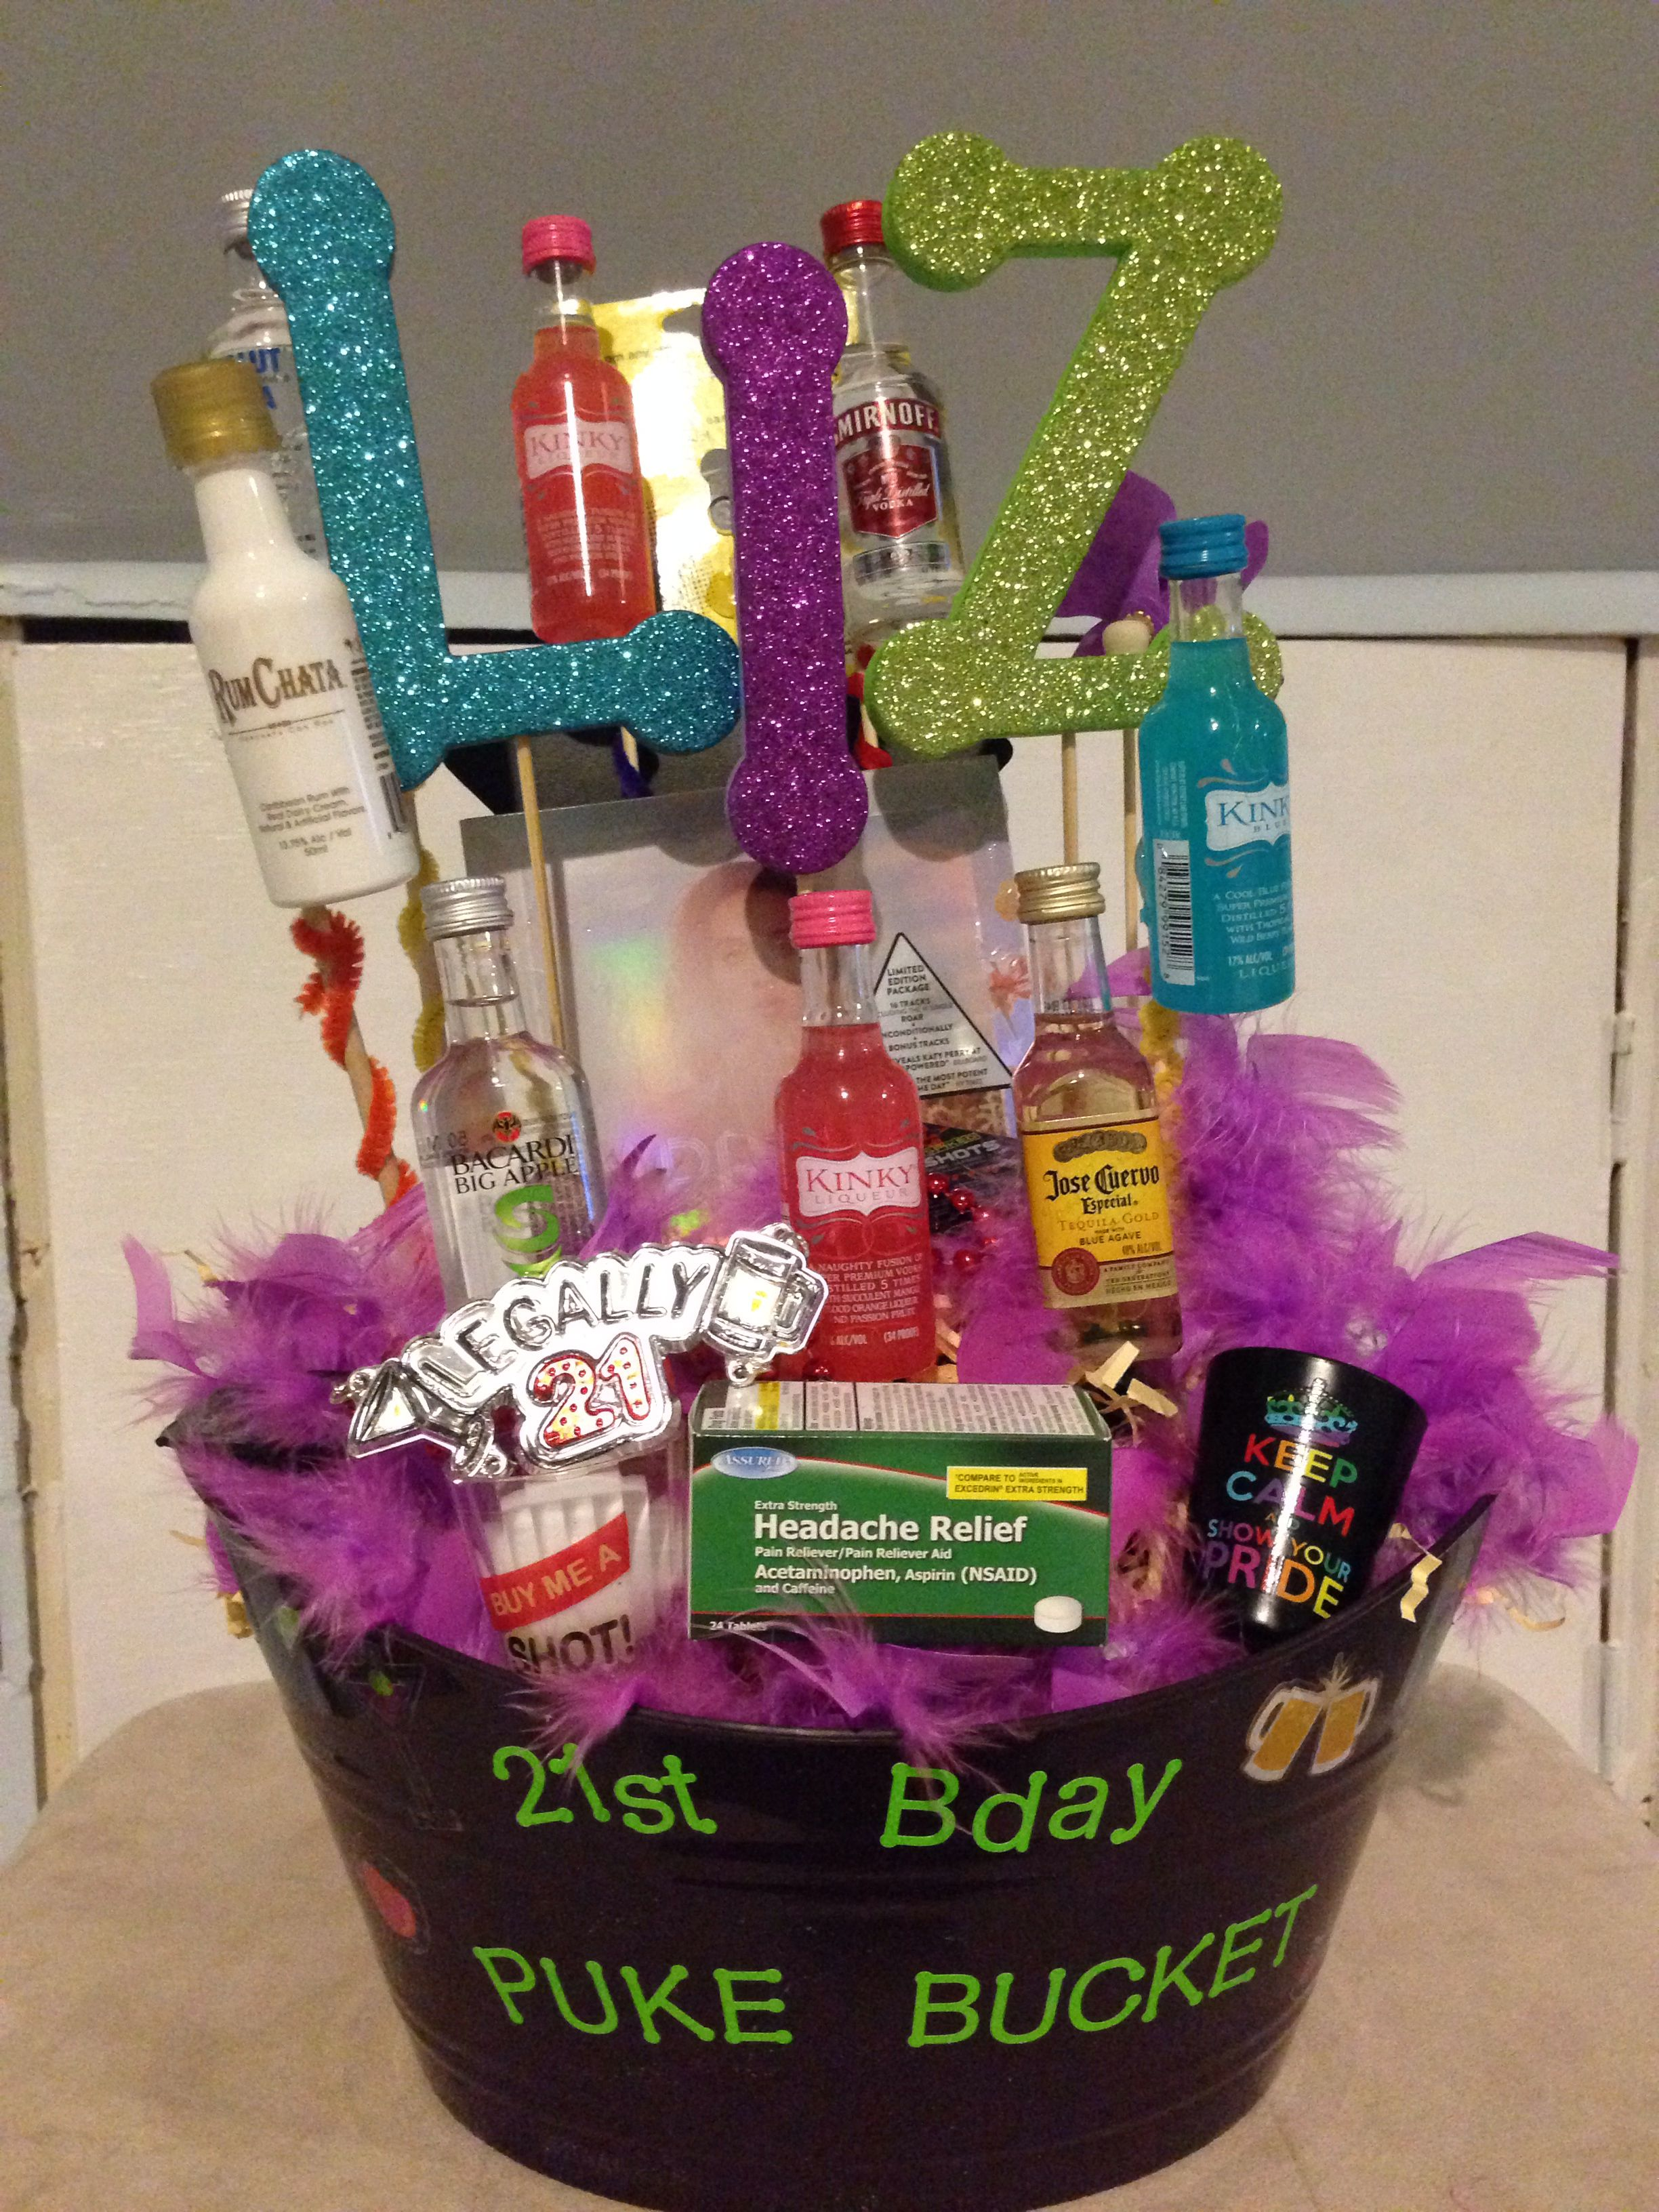 21st Birthday Gift Basket I Made For My Sister In Law Mini Liquor Bottles Foam Letters From Hobby Lo 21st Birthday Birthday Gift Baskets 21st Birthday Gifts